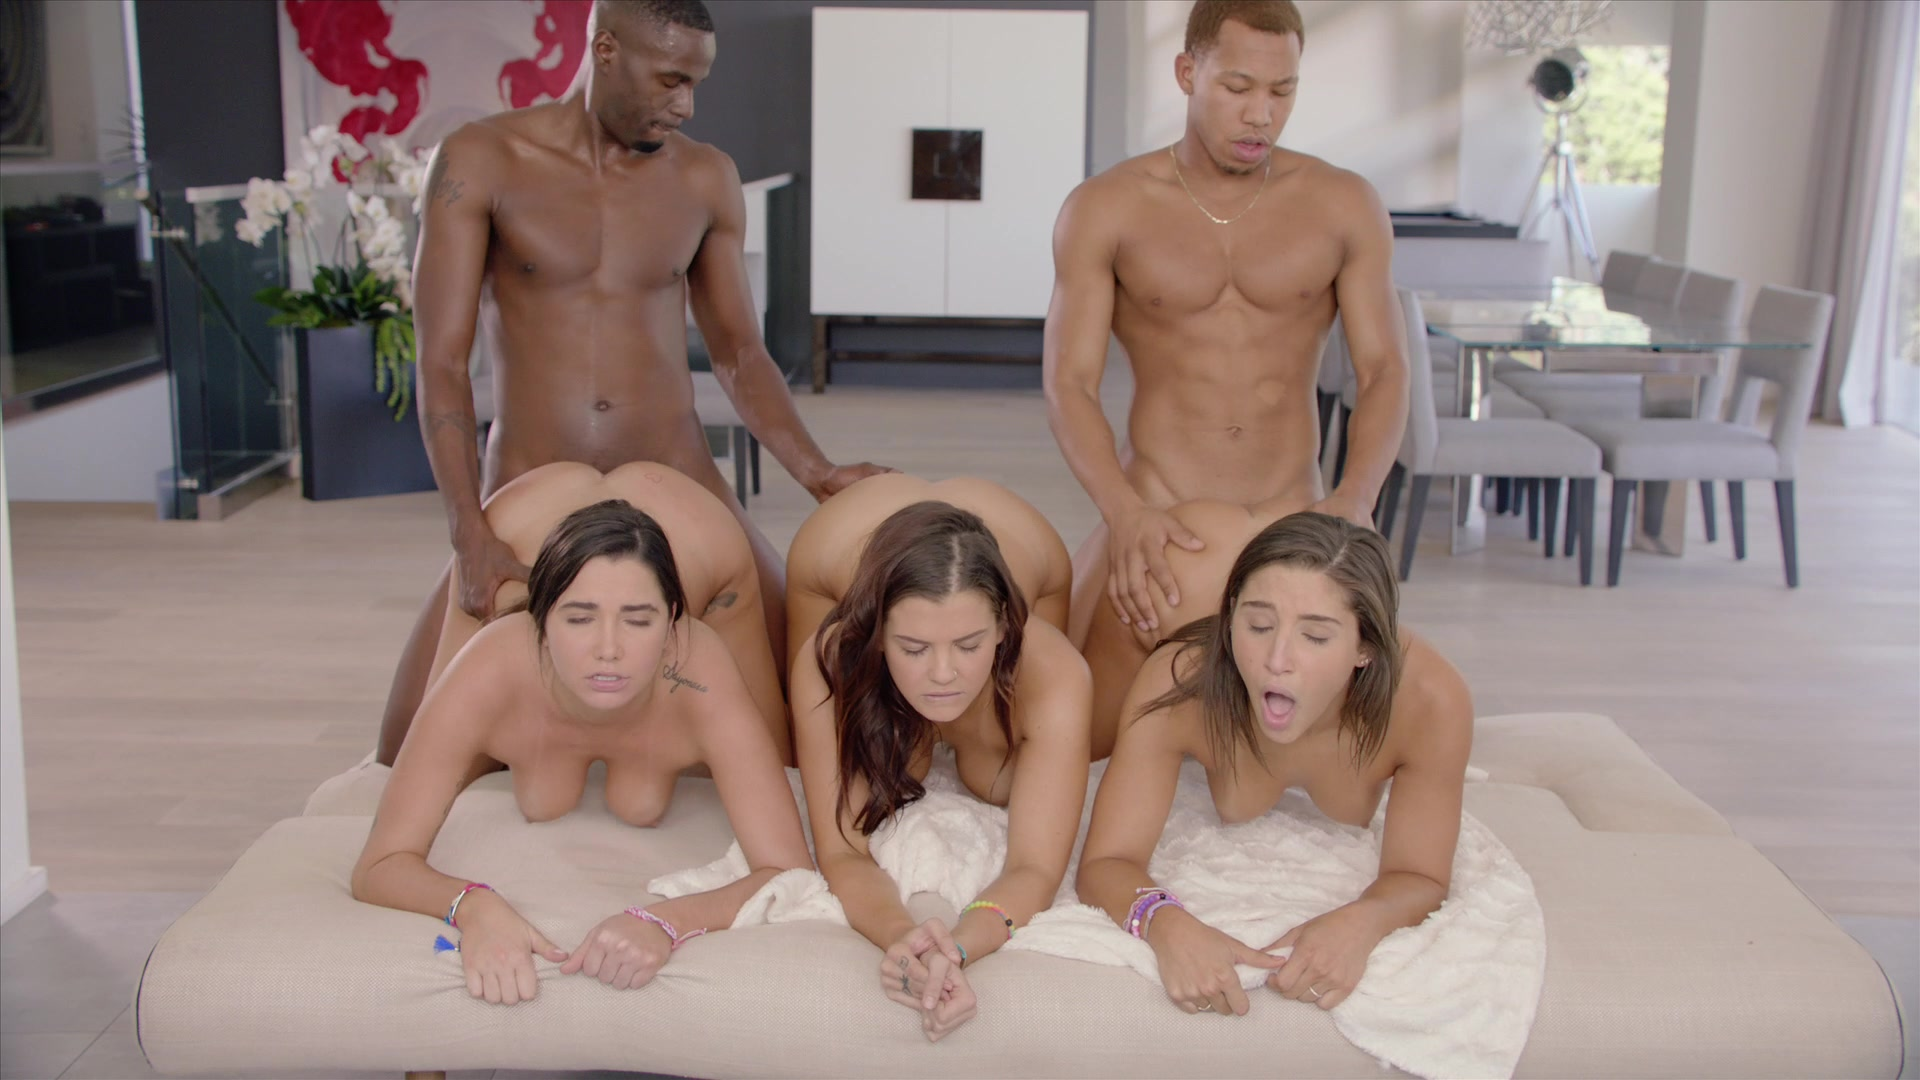 Scene with Keisha Grey, Abella Danger and Karlee Grey - image 15 out of 20